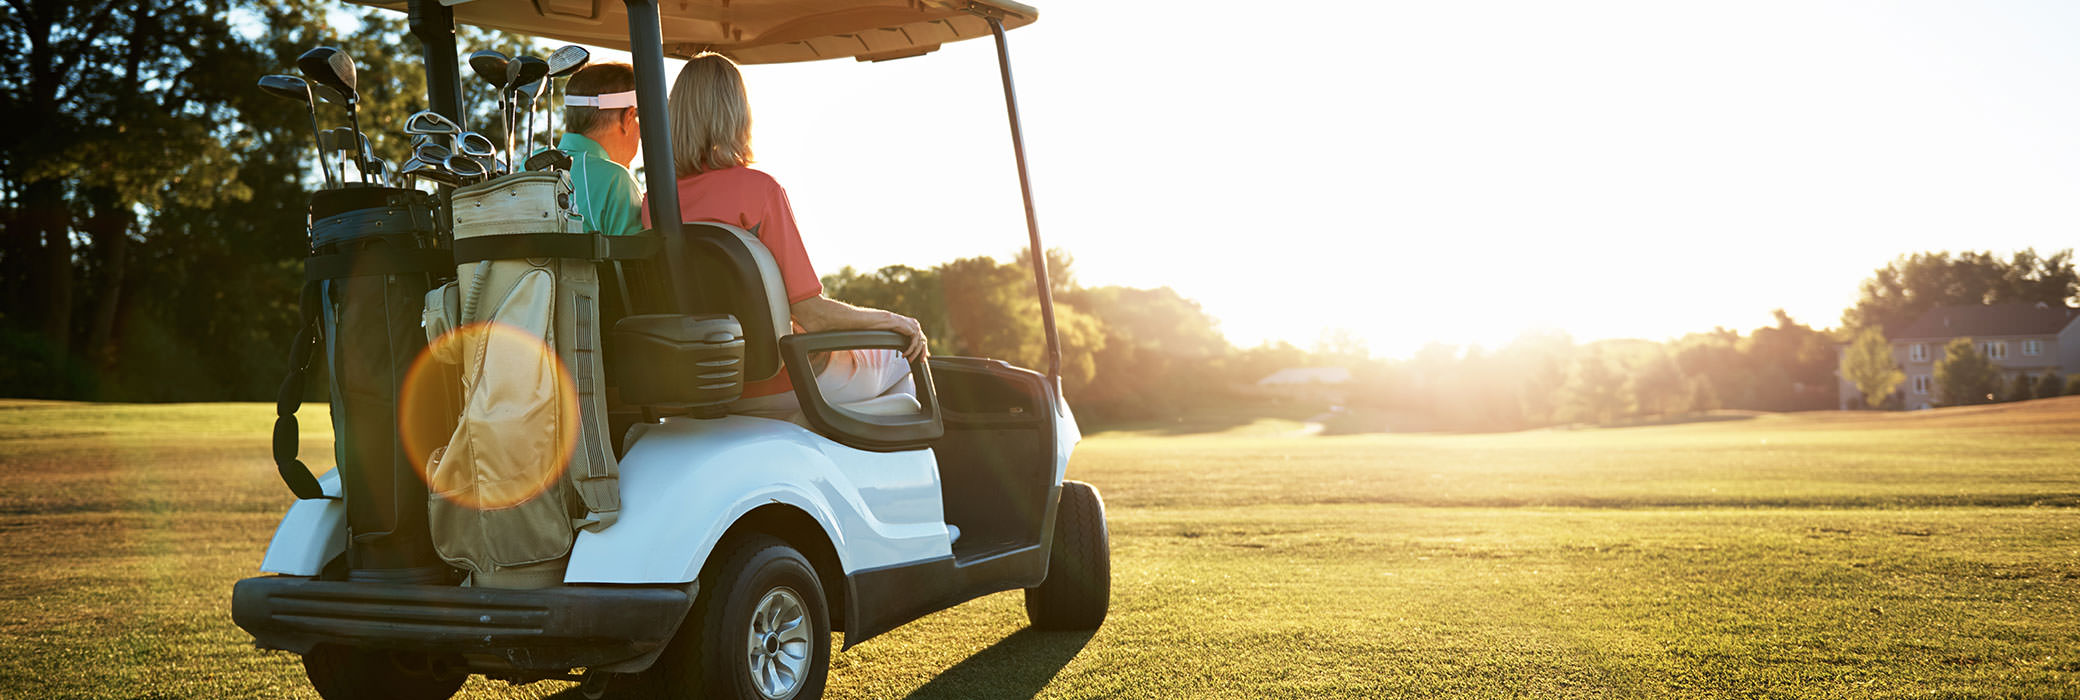 Couple sitting in a white golf cart on a golf course while it's sunny